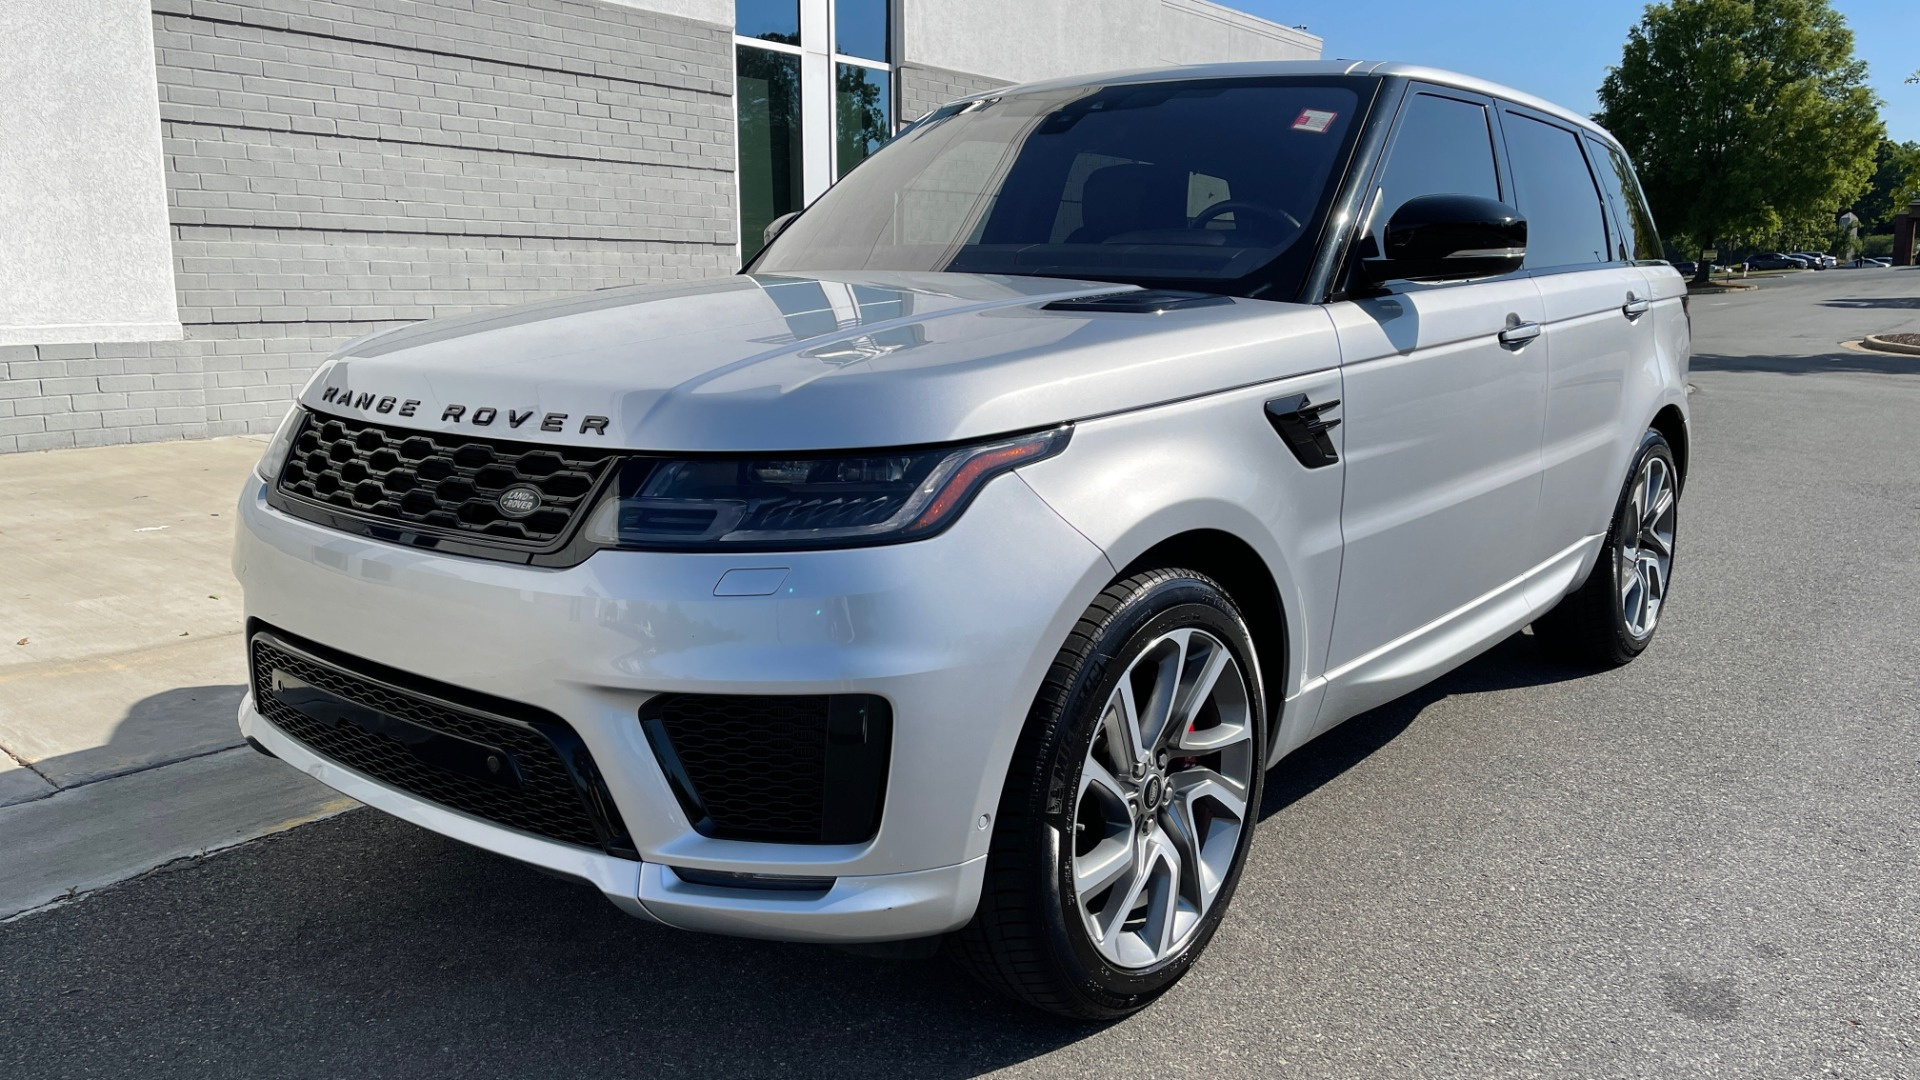 Used 2019 Land Rover RANGE ROVER SPORT HSE DYNAMIC / NAV / PANO-ROOF / BLIND SPOT / LANE DEPART / REARVIEW for sale Sold at Formula Imports in Charlotte NC 28227 4